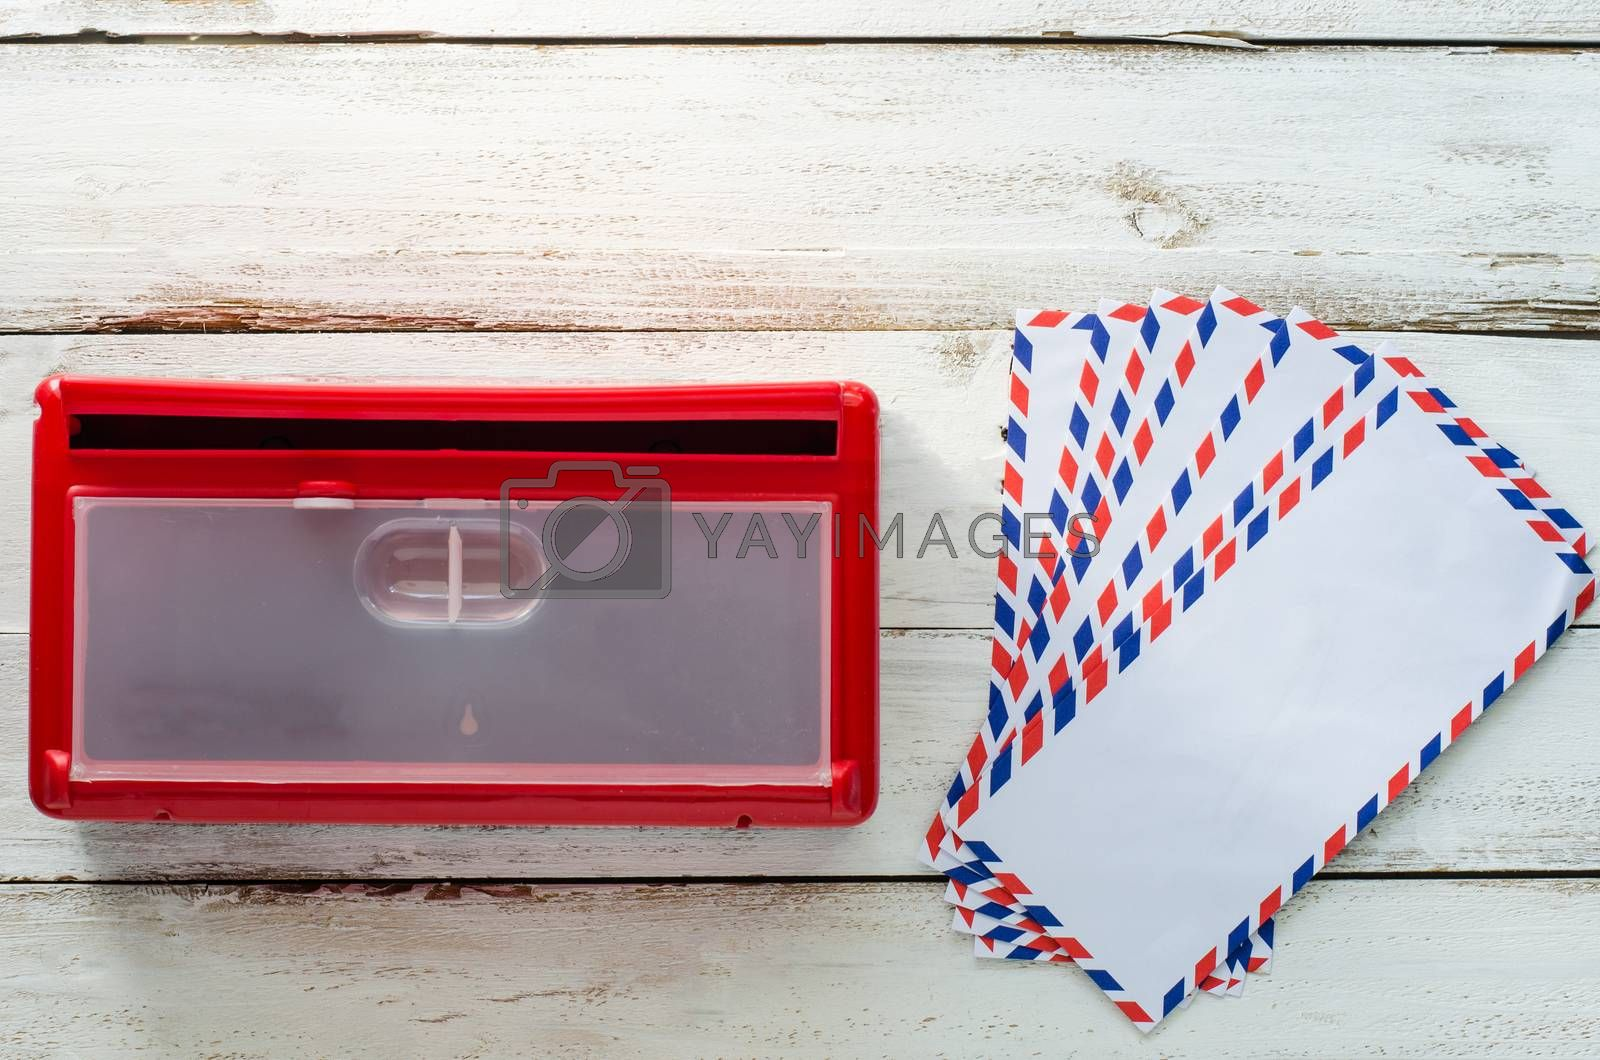 Red envelope mailboxes are placed on a wooden floor.